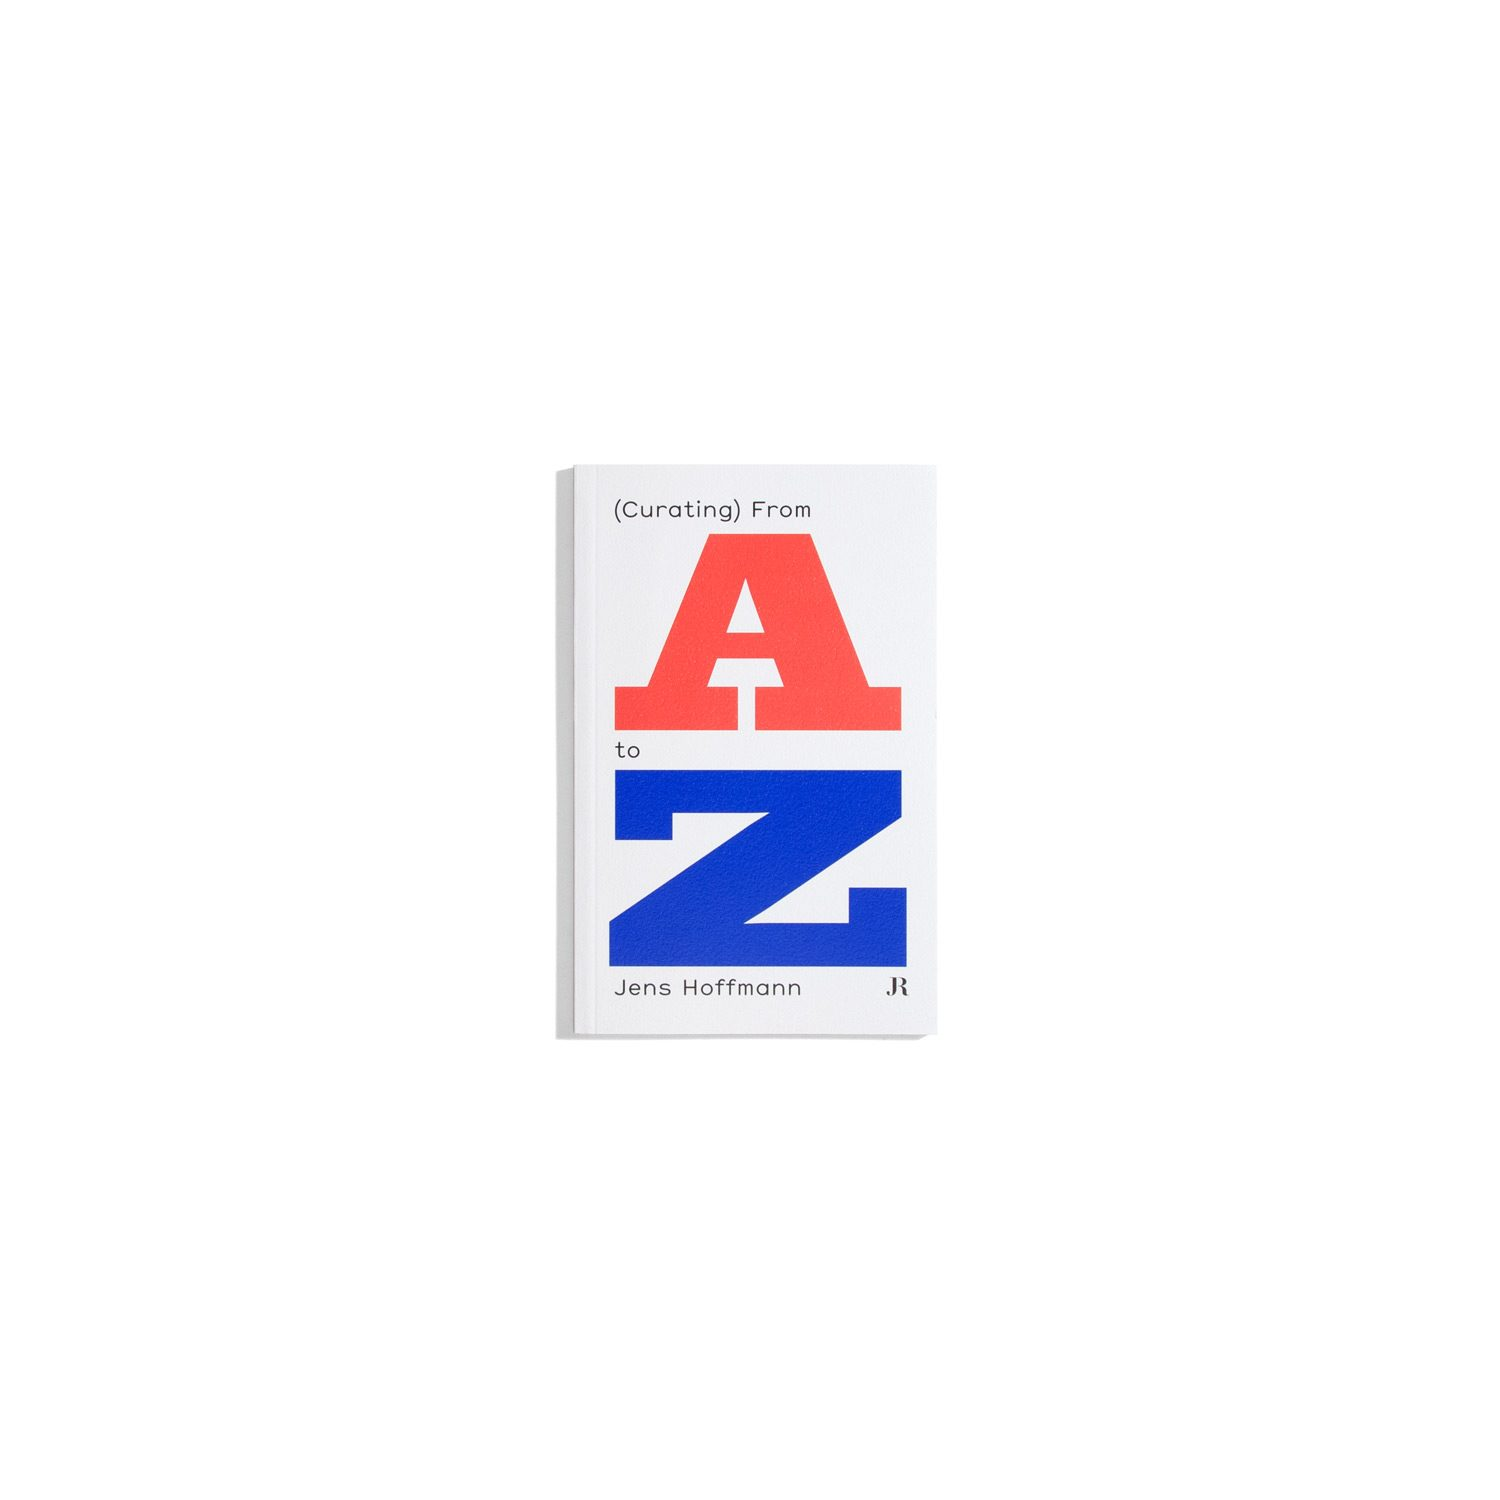 Curating from A to Z